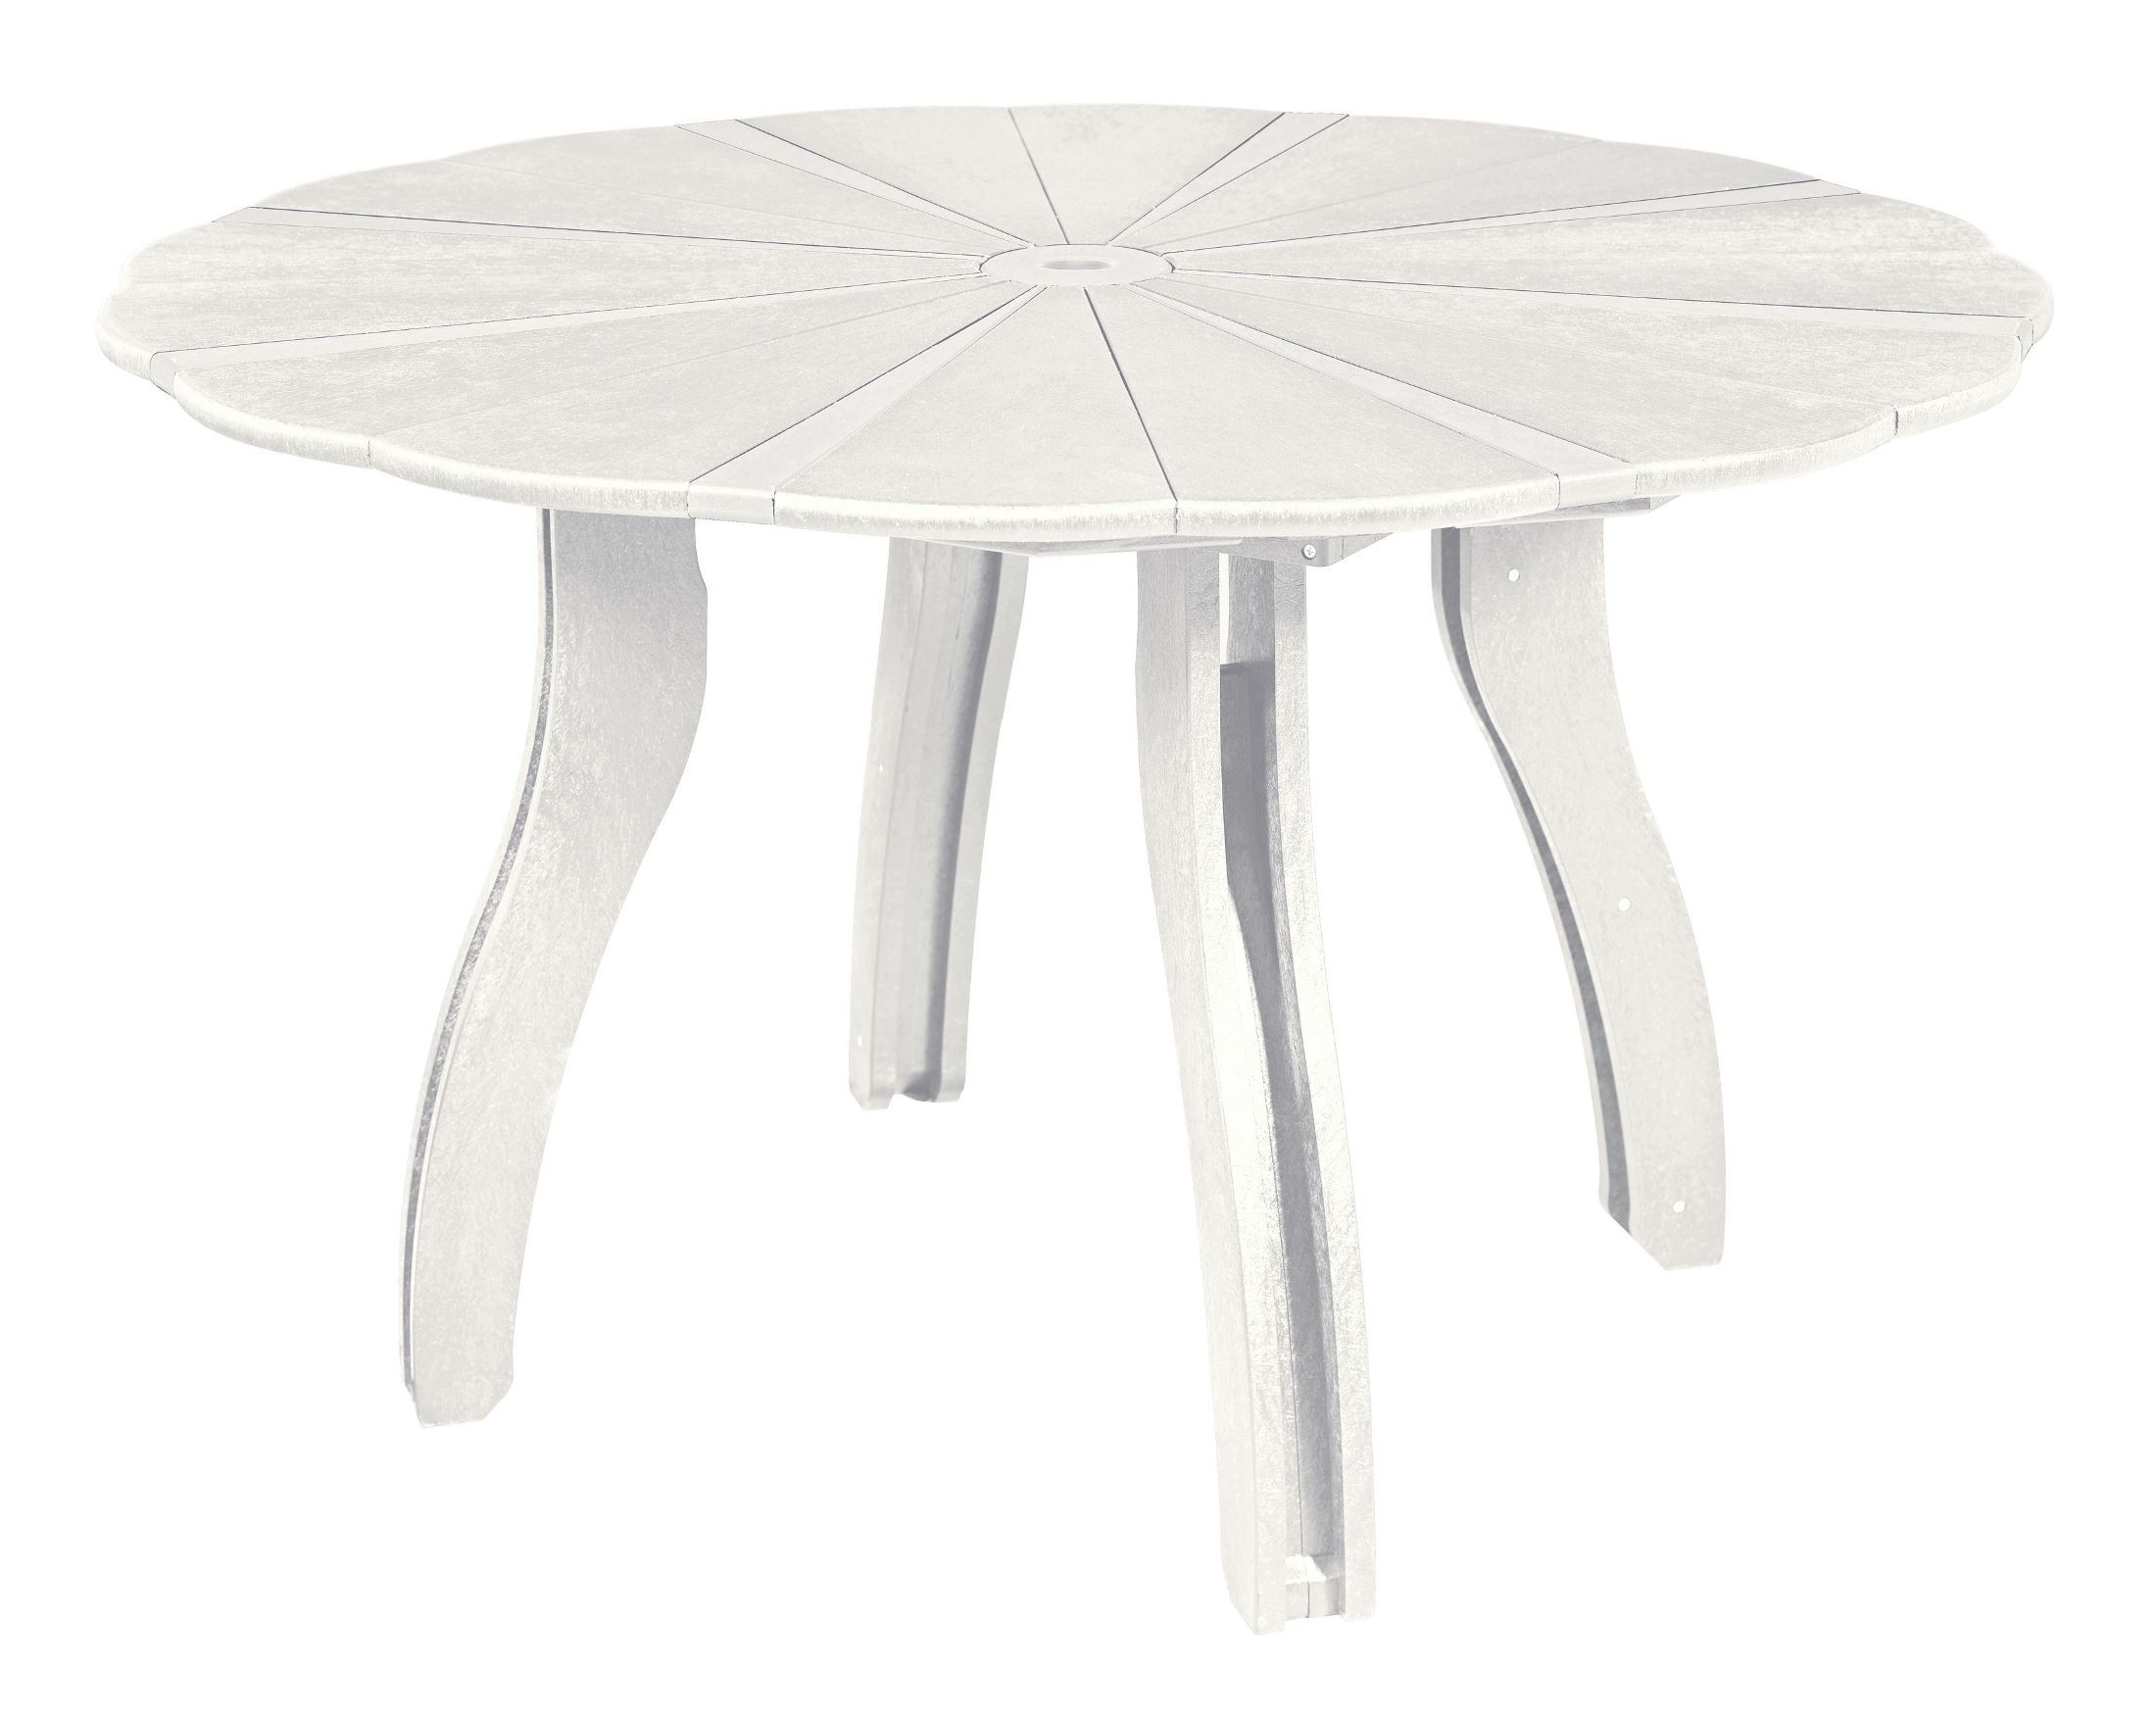 "Round Dining Table 52 Inch: Generations White 52"" Scalloped Round Dining Table From CR"